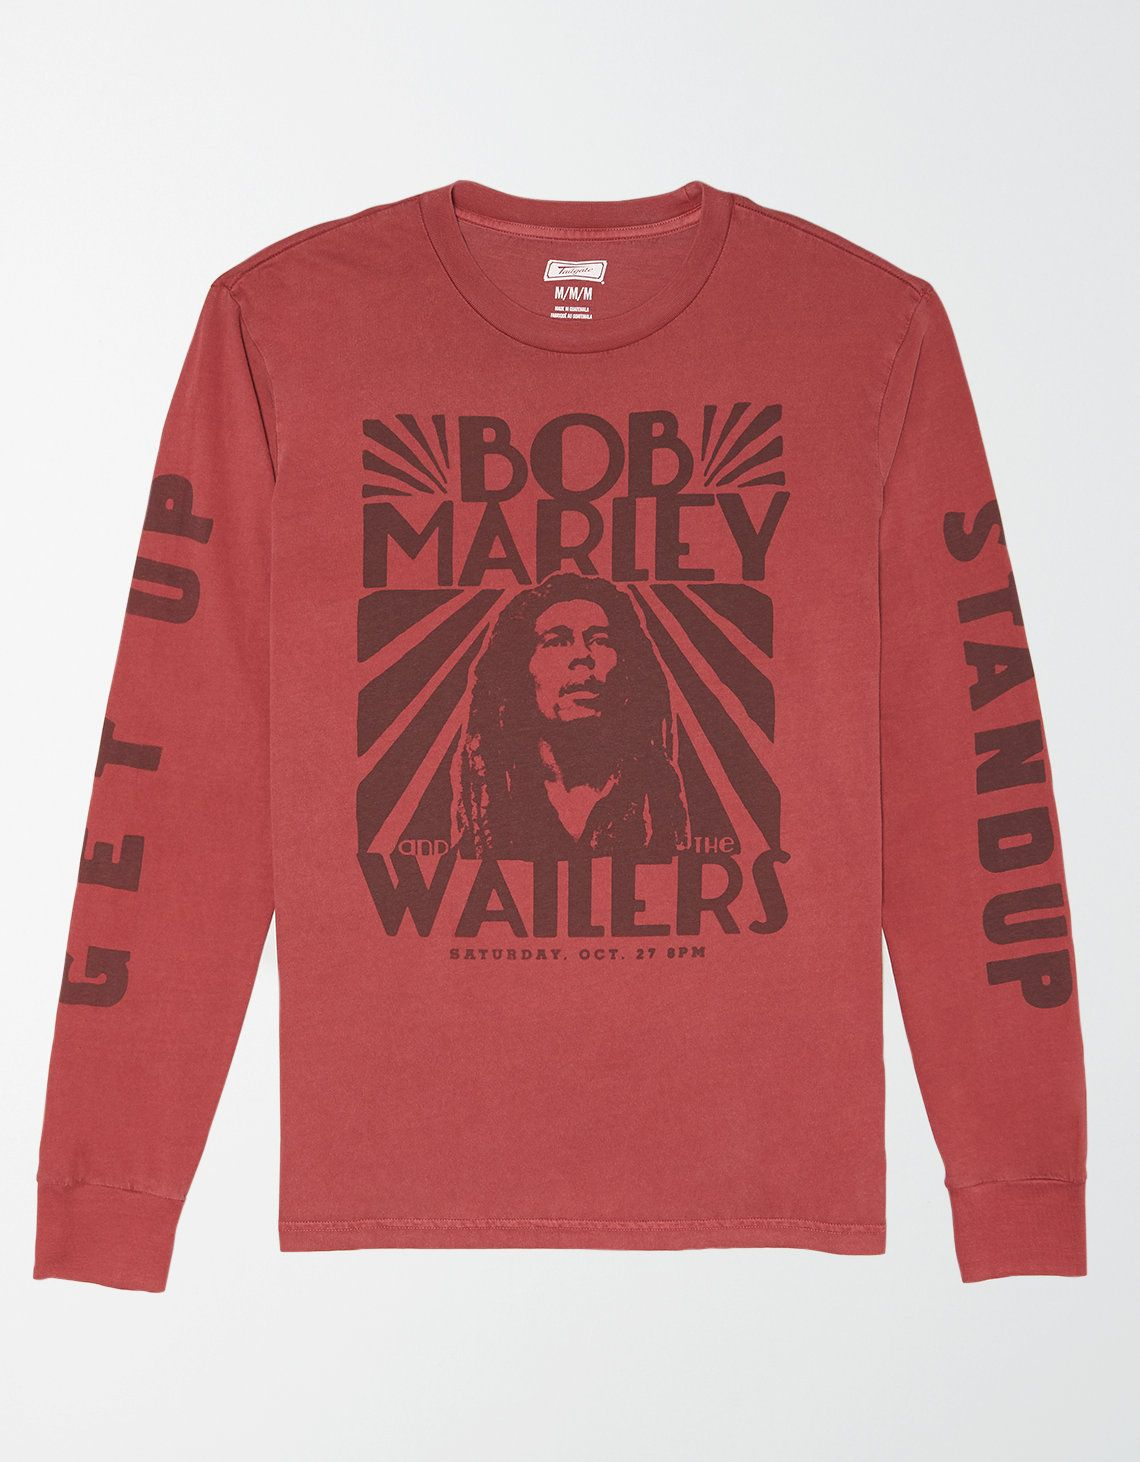 Tailgate Long Sleeve Bob Marley Graphic T Shirt Mens Outfitters Long Sleeve Tshirt Men Graphic Sweatshirt